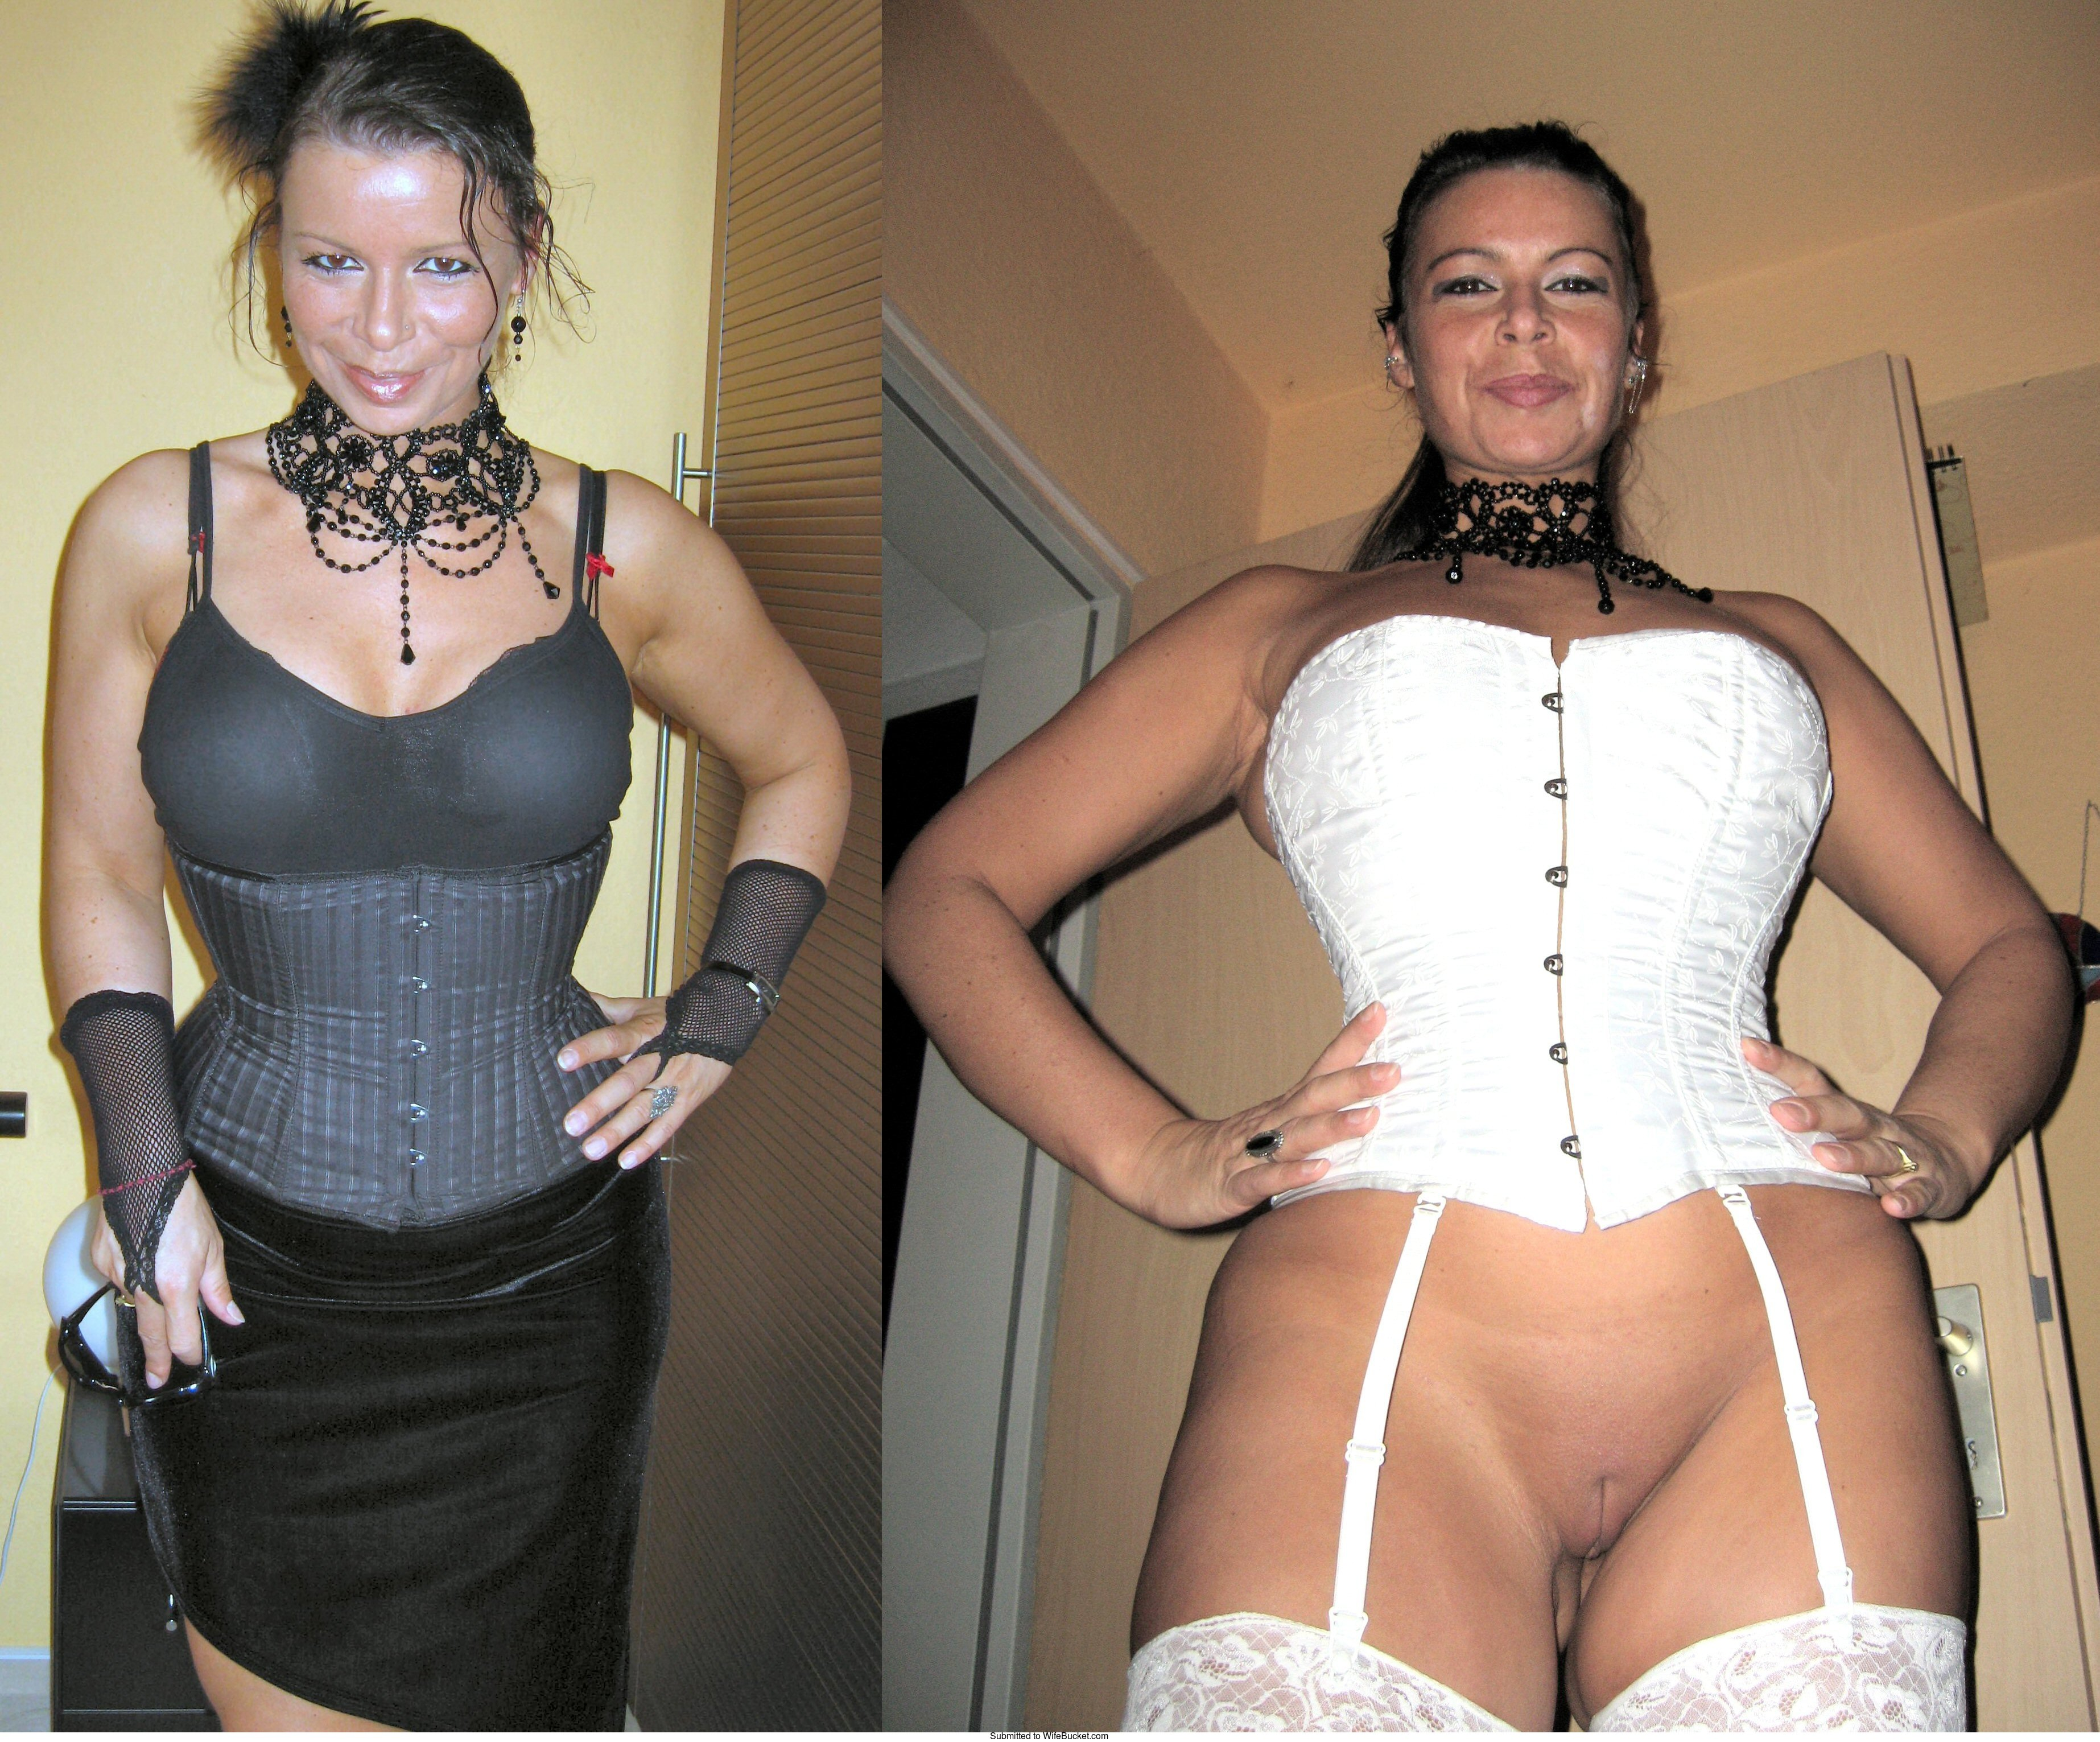 before-after pics Archives | WifeBucket | Offical MILF Blog